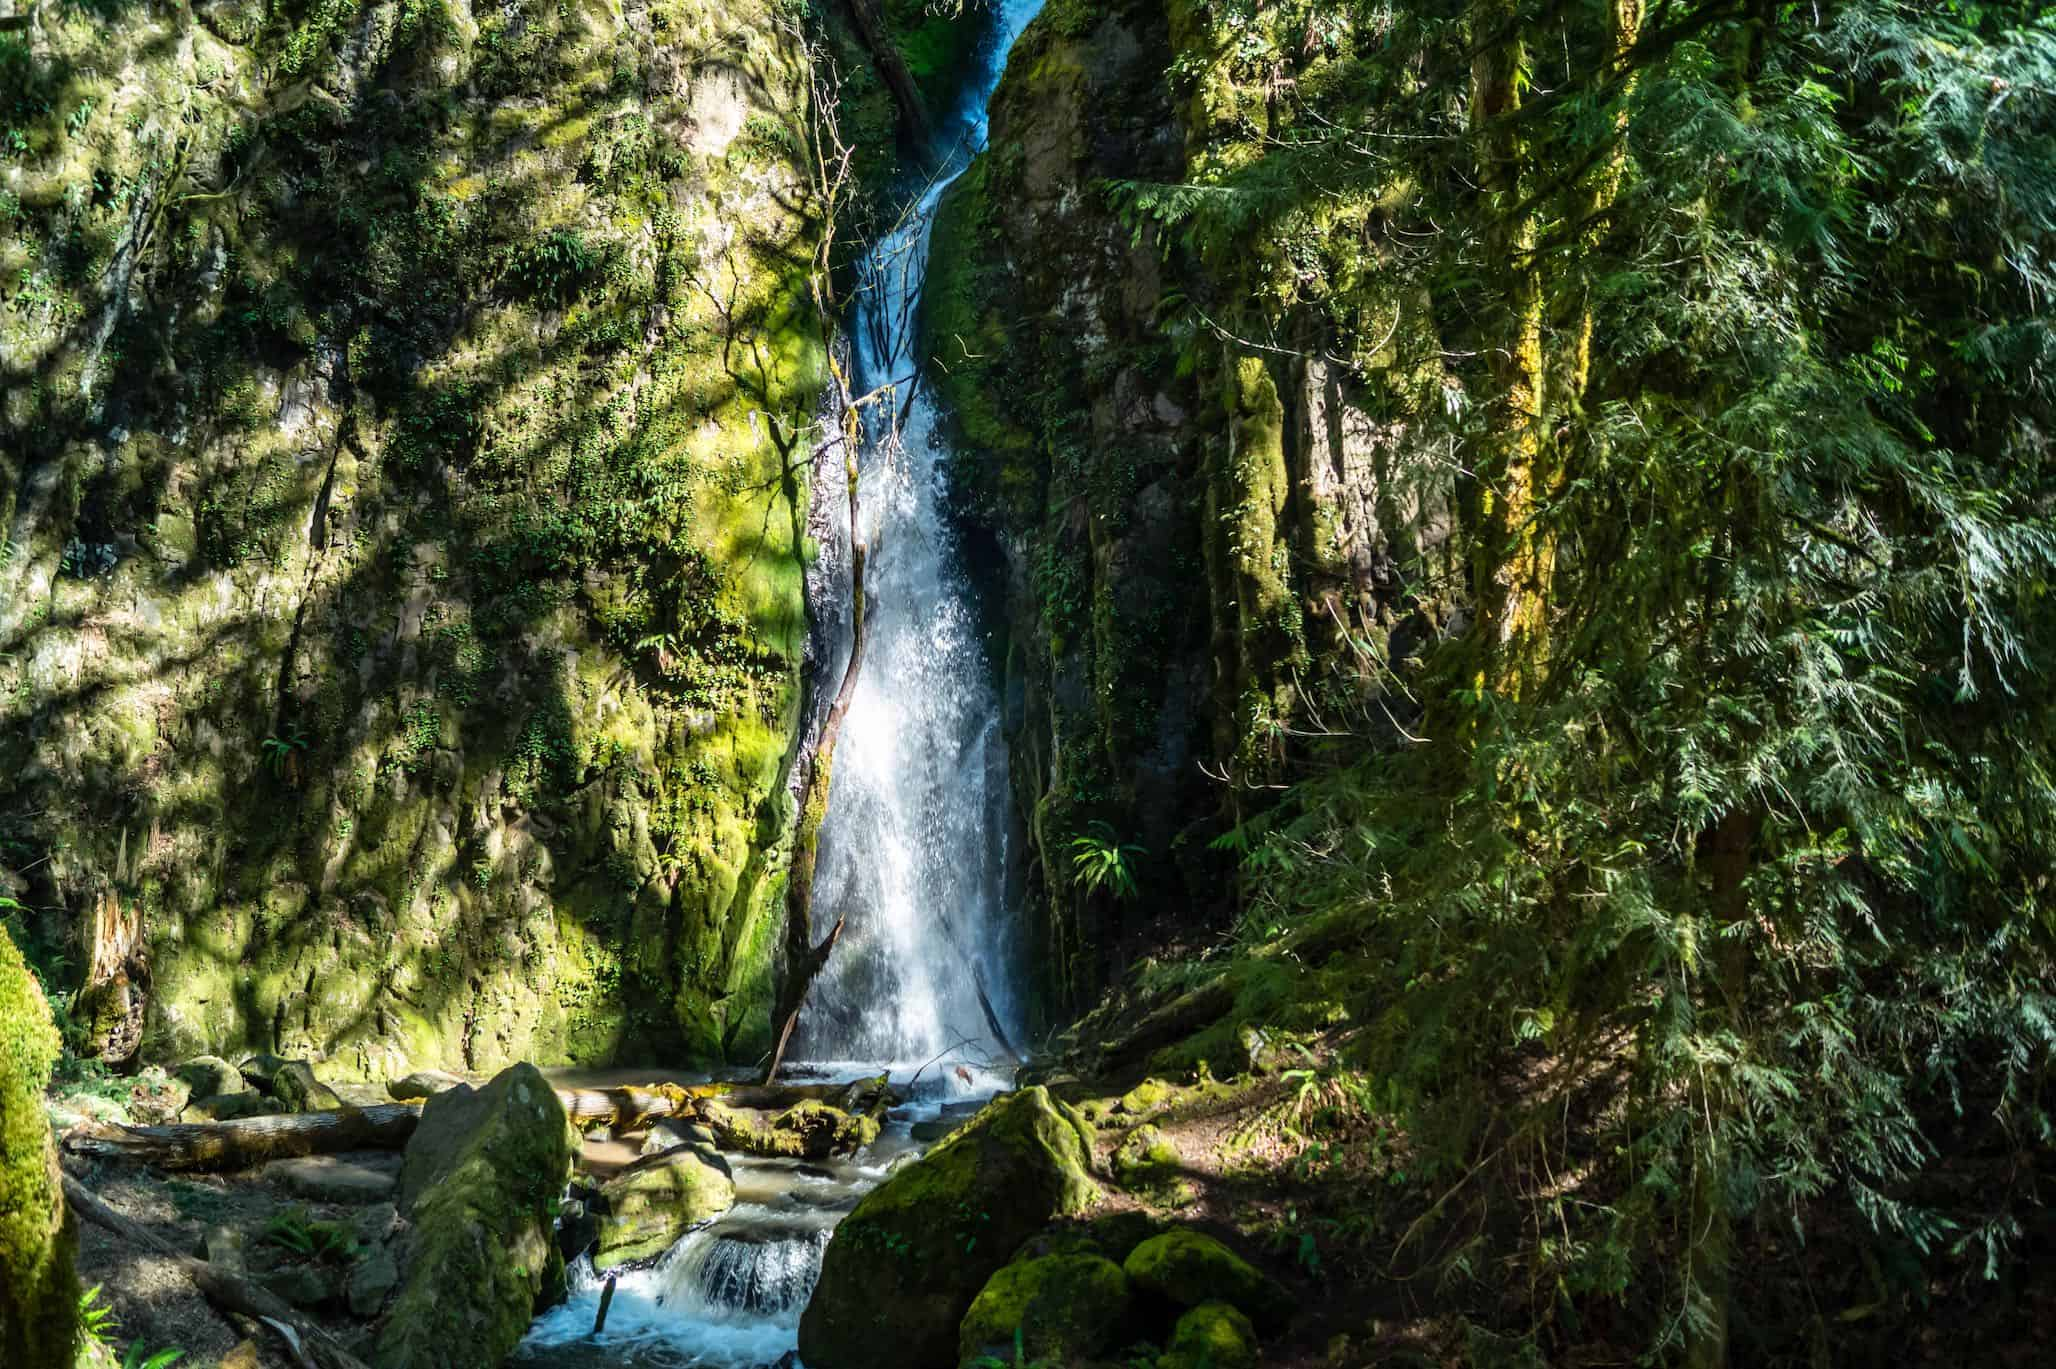 Lower Soda Creek Falls